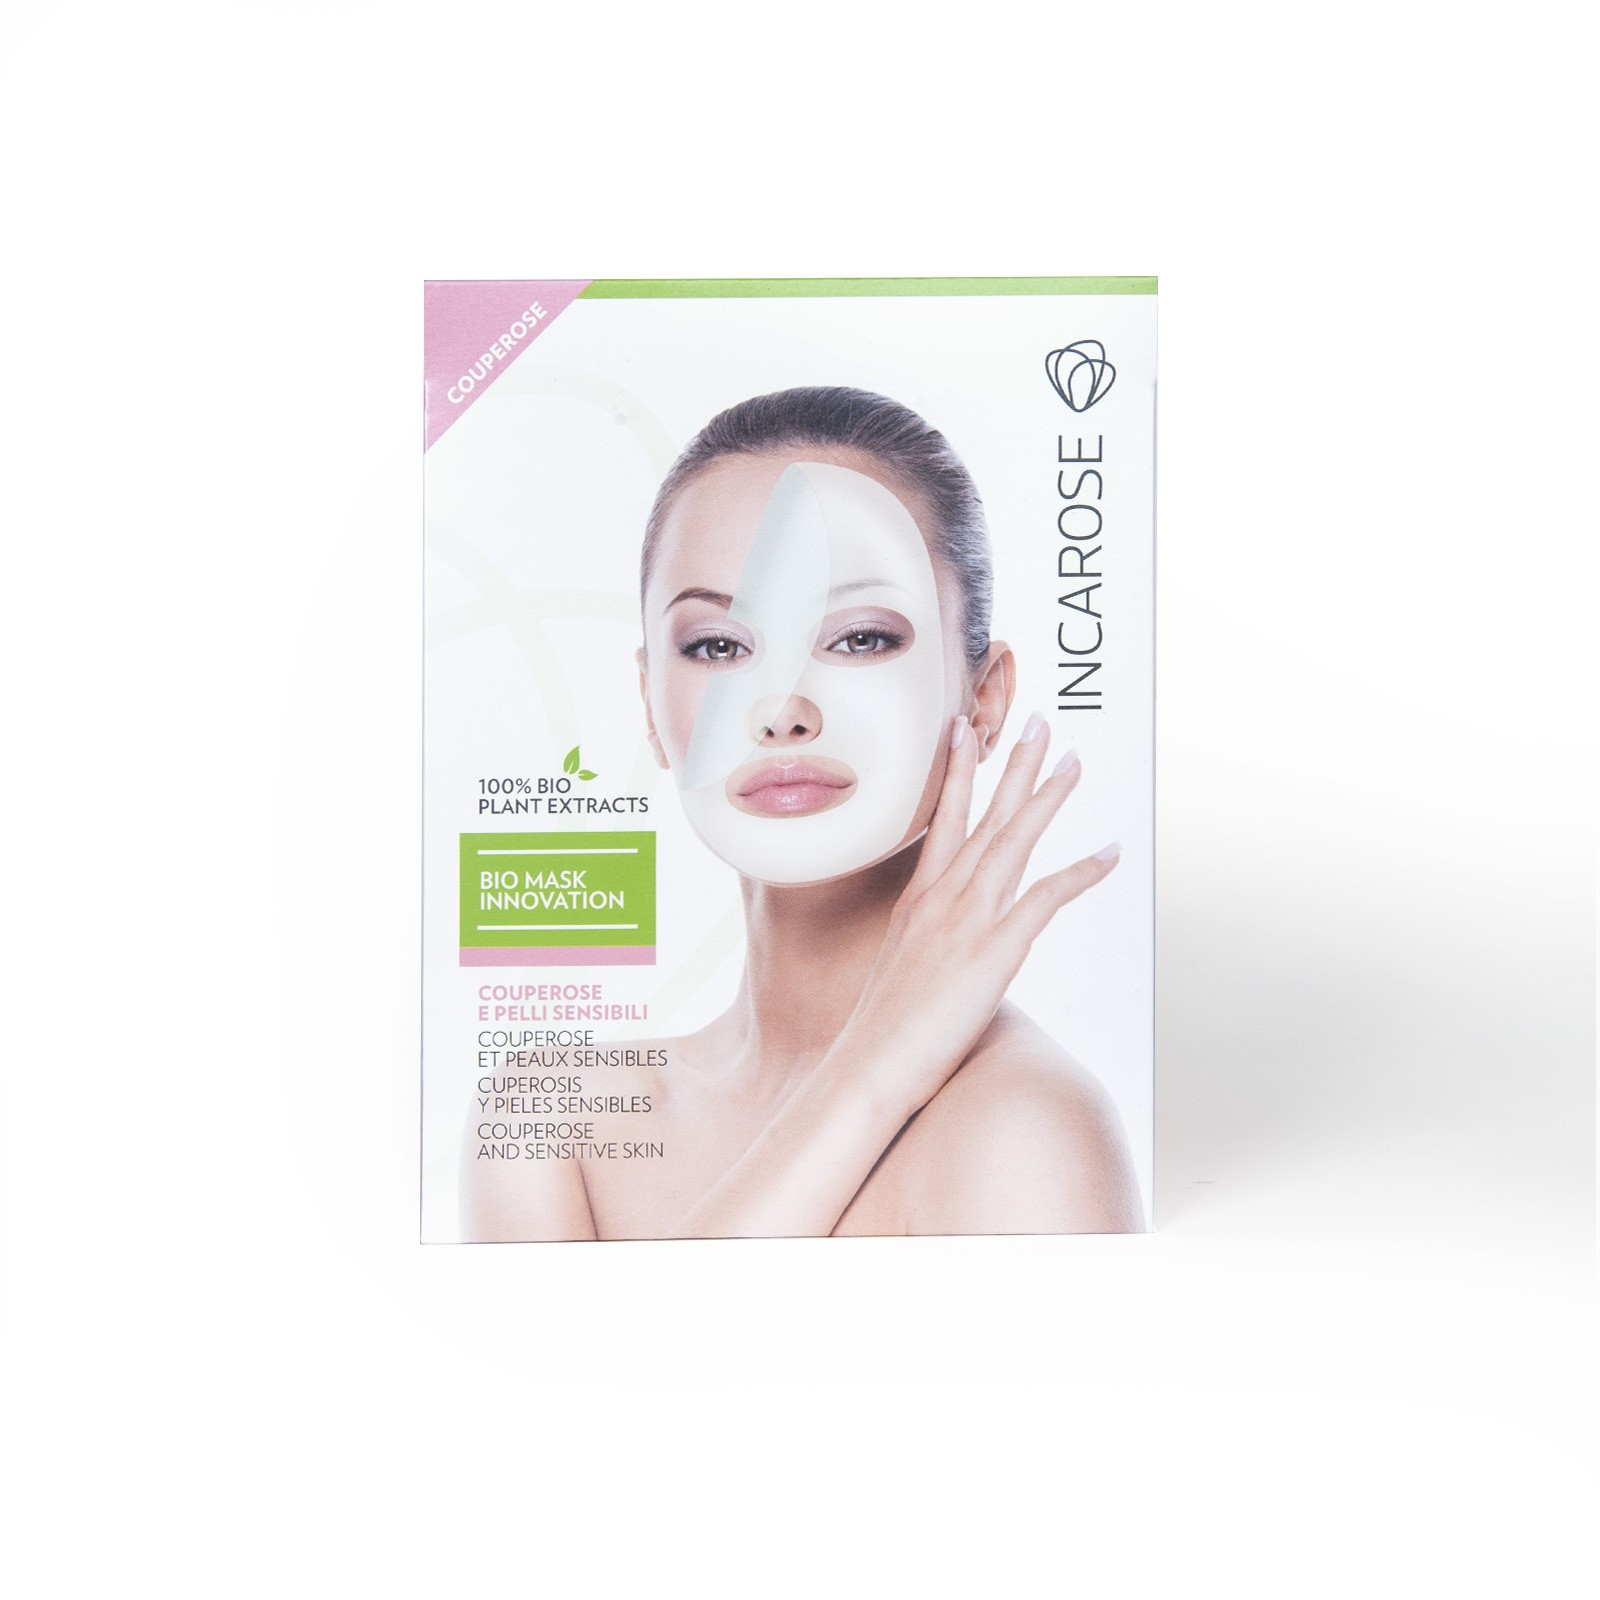 BIO MASK INNOVATION - Couperose e pelli sensibili (monouso)